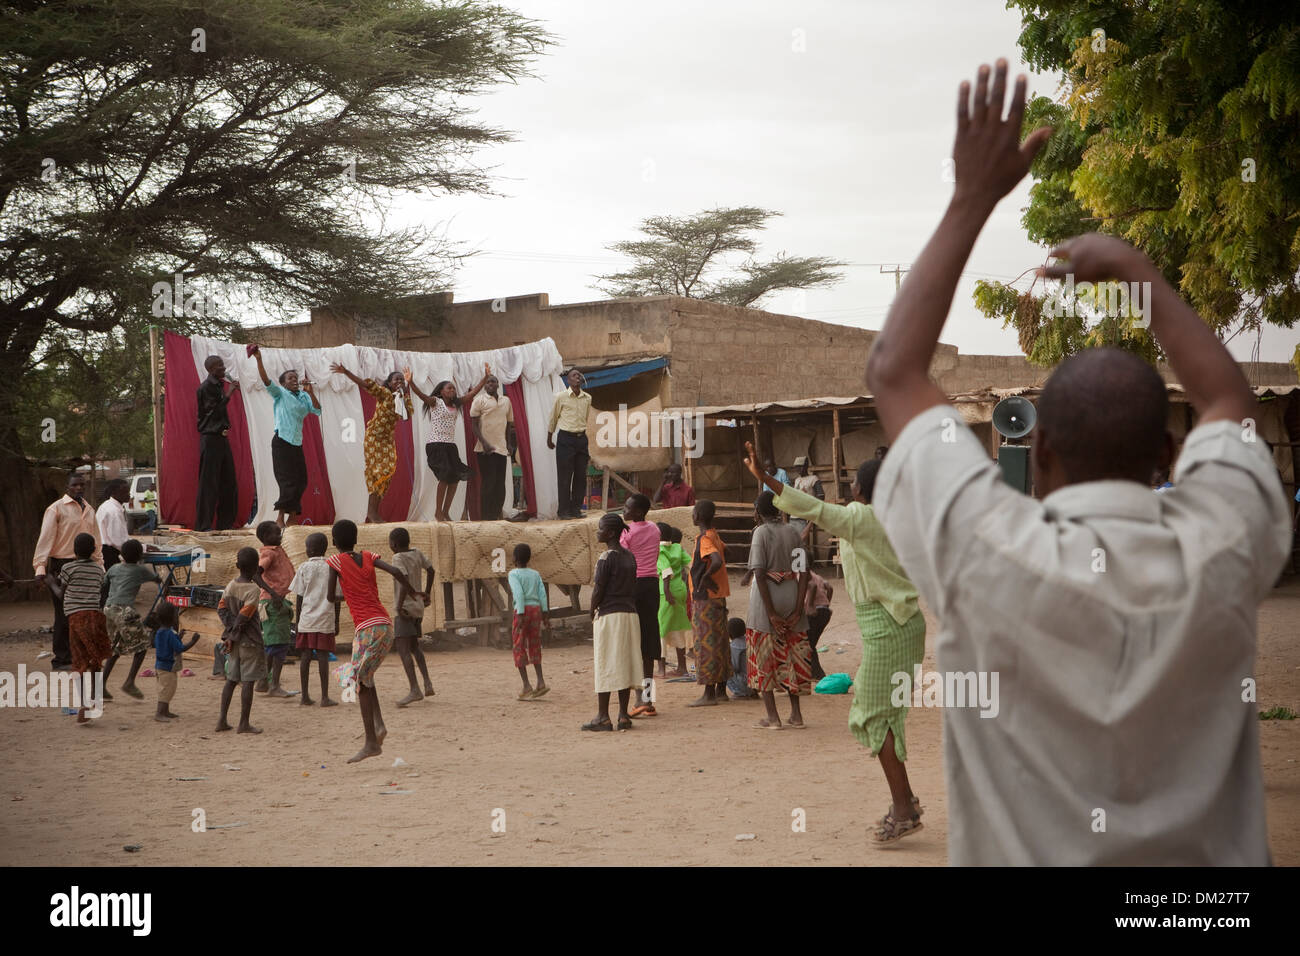 Street Pentecostal church service in Lodwar, Kenya, East Africa. - Stock Image